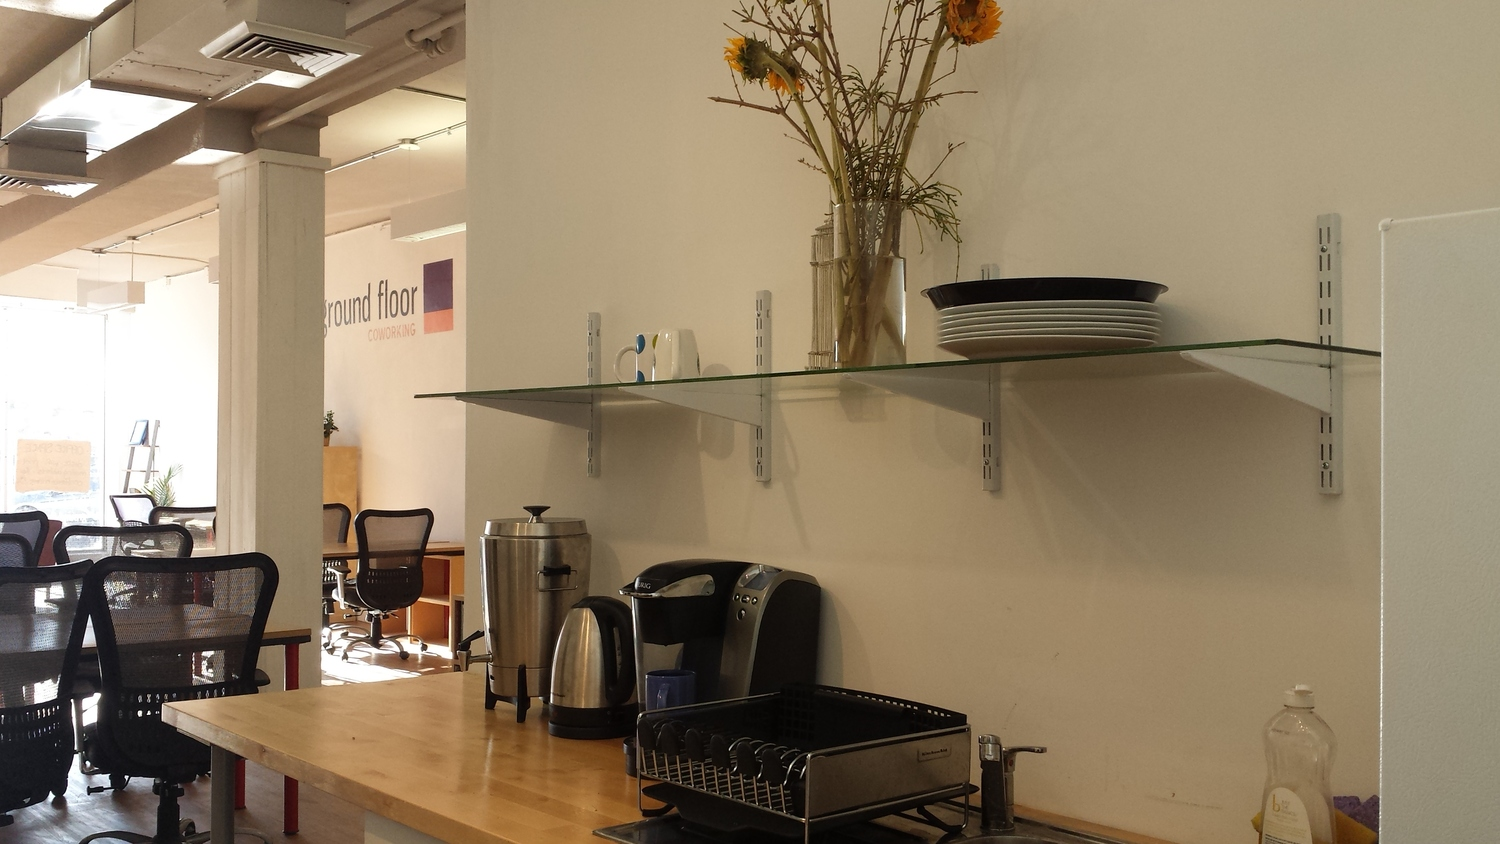 Our Offerings - - super fast internet-Community Kitchen- Event Spaces- Common Areas- On-site Printers